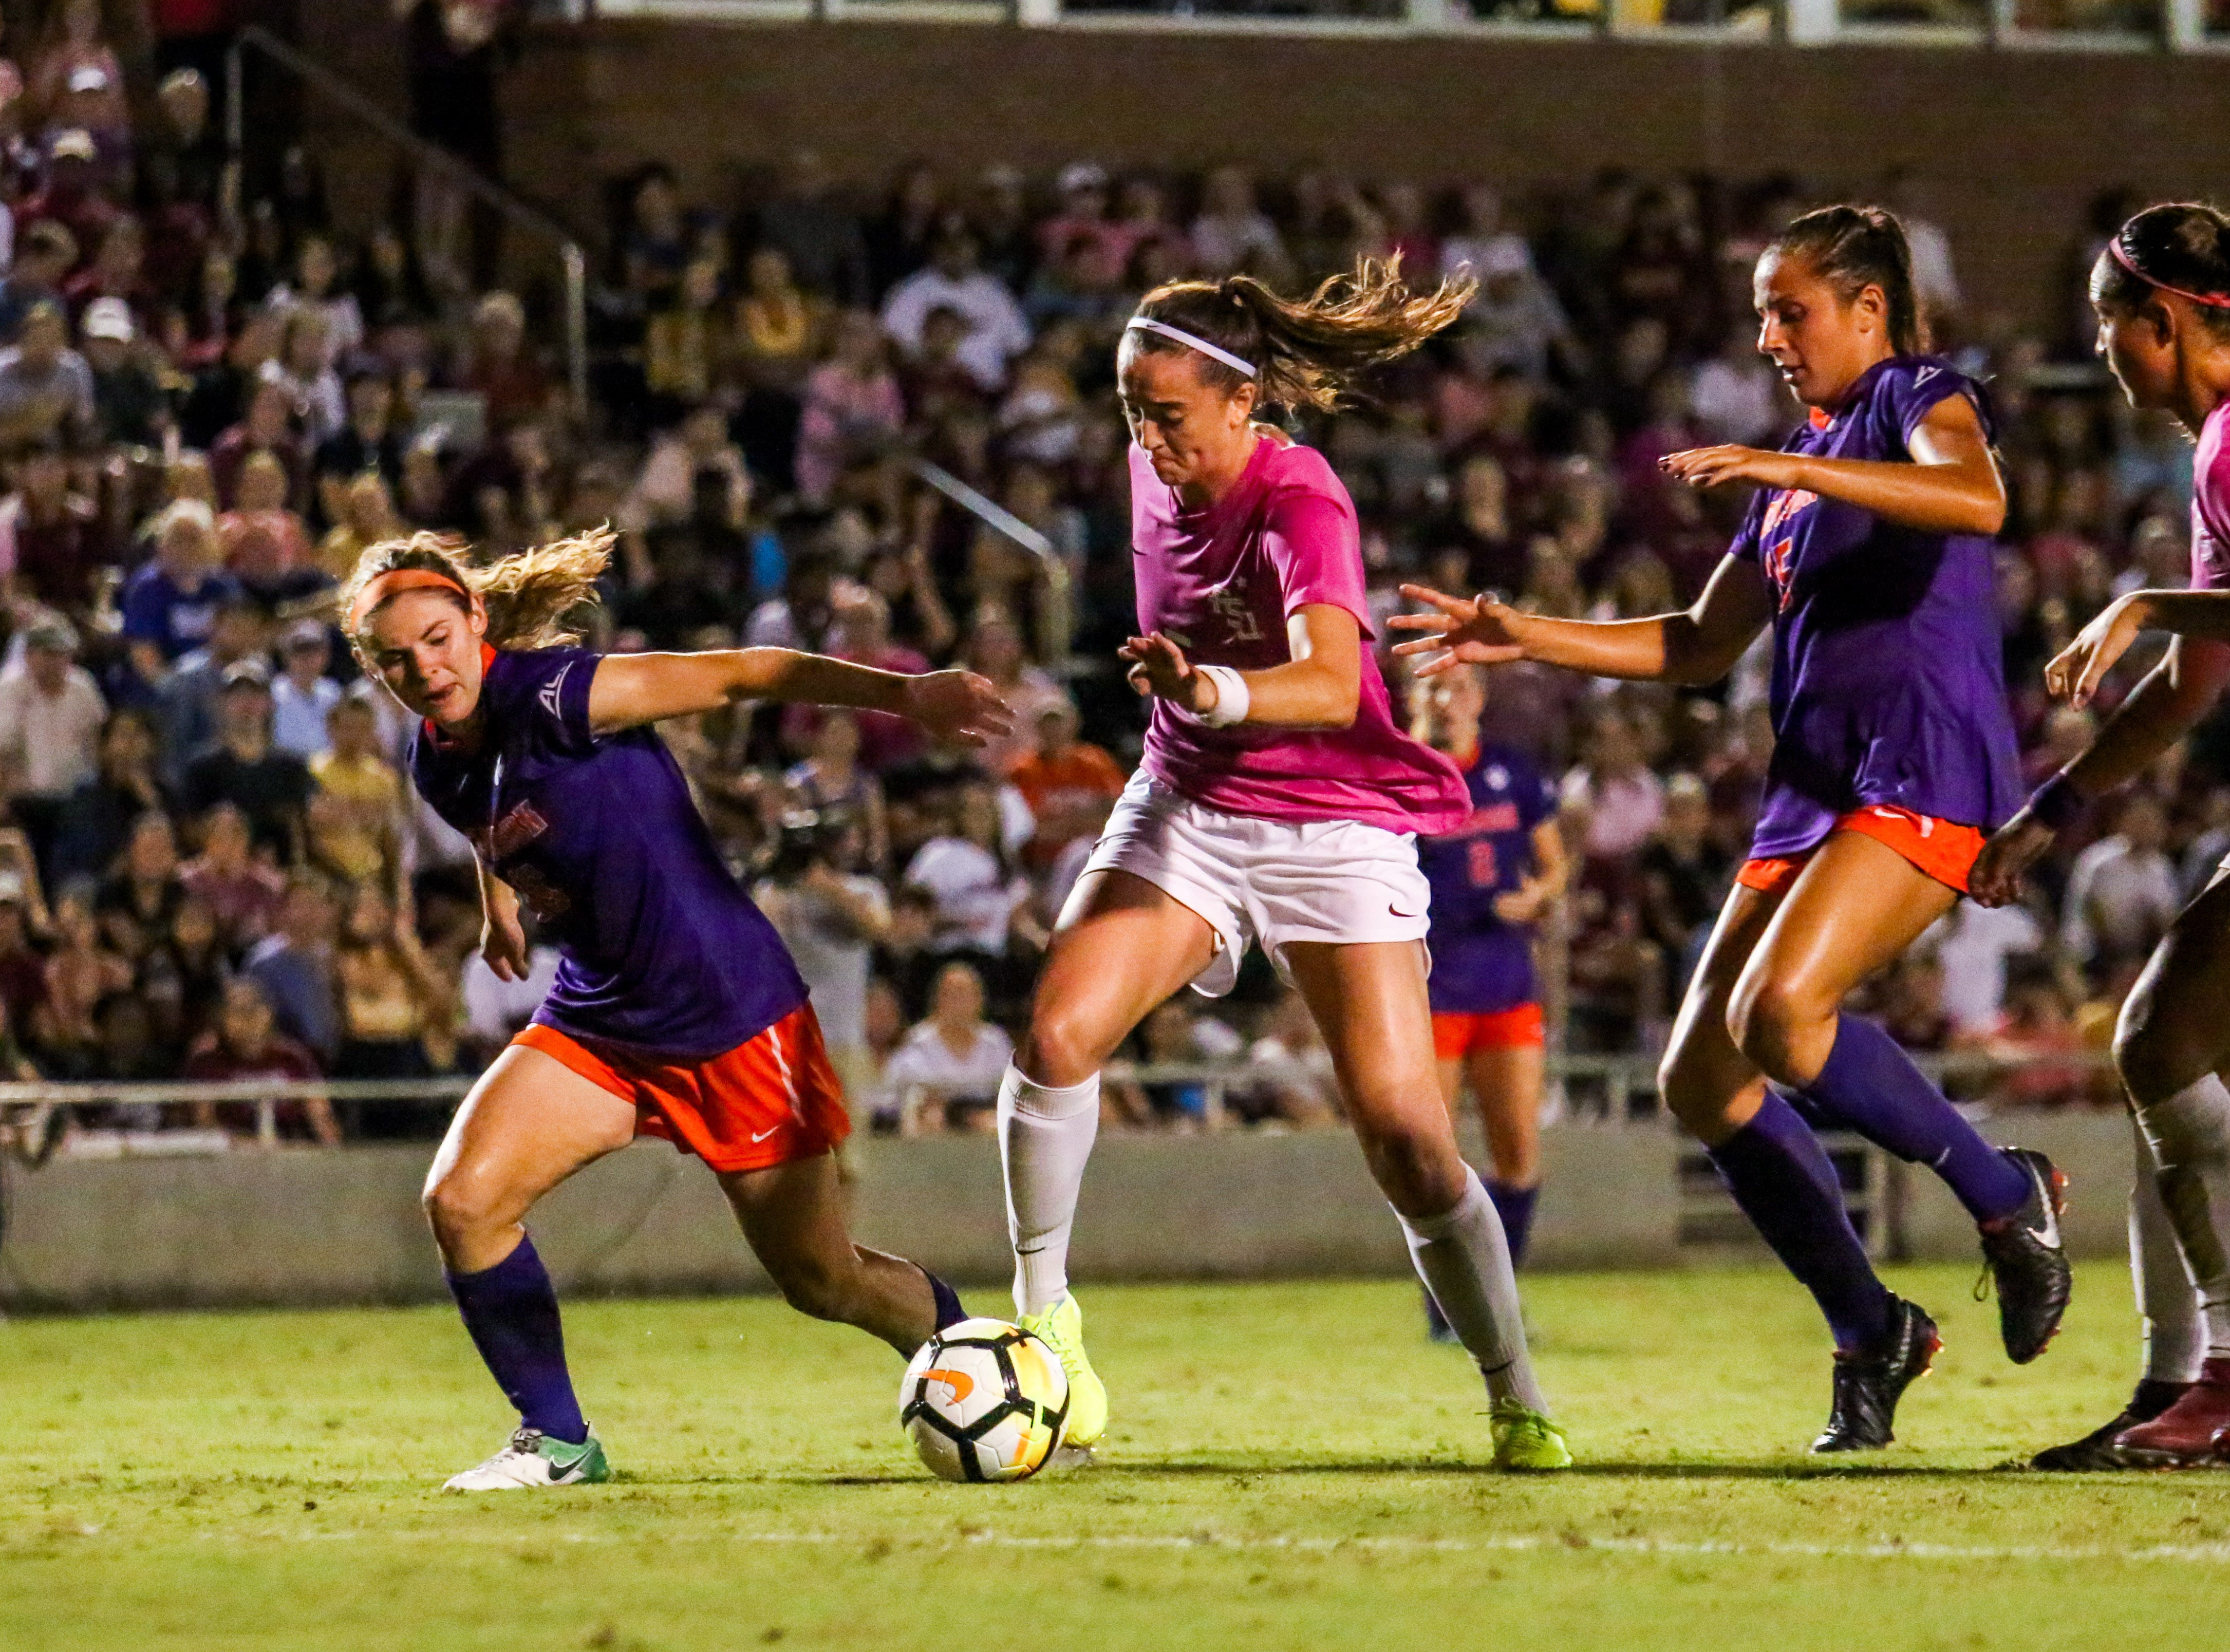 Sophomore Anna Patten (5) had a couple scoring opportunities in the second half but couldn't get it done against Clemson's defense on Thursday, October 4th at the Seminole Soccer Complex.